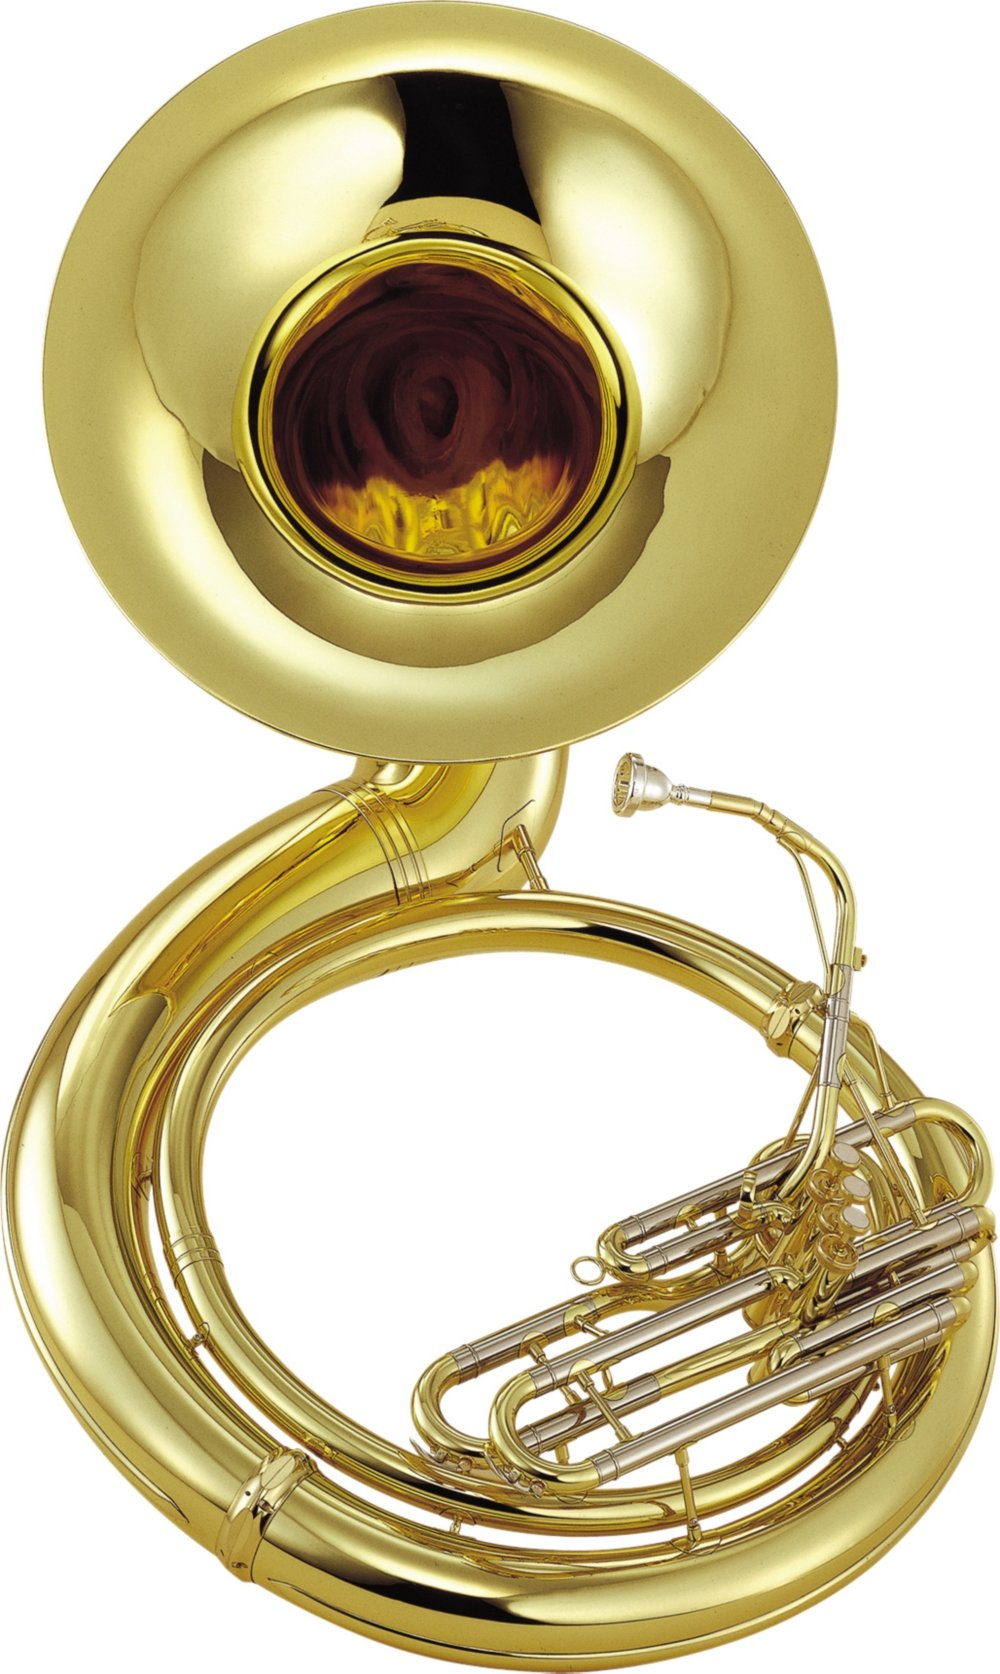 Yamaha YSH-411 Series Brass BBb Sousaphone Ysh411 Lacquer - Instrument Only